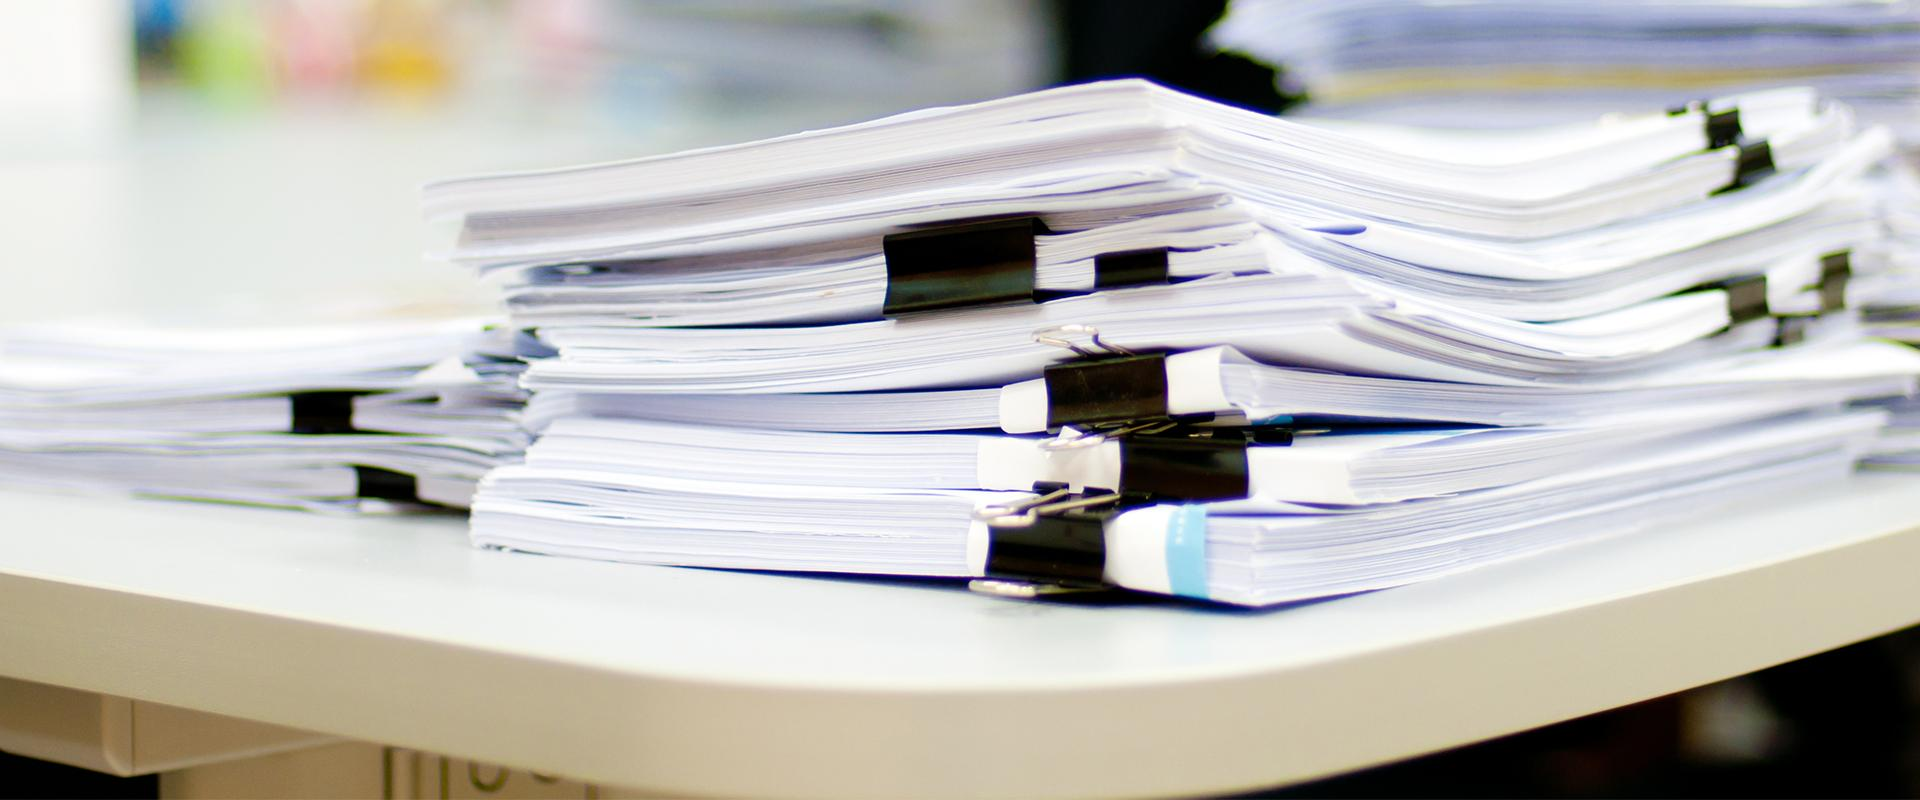 files of resources stacked on a desk